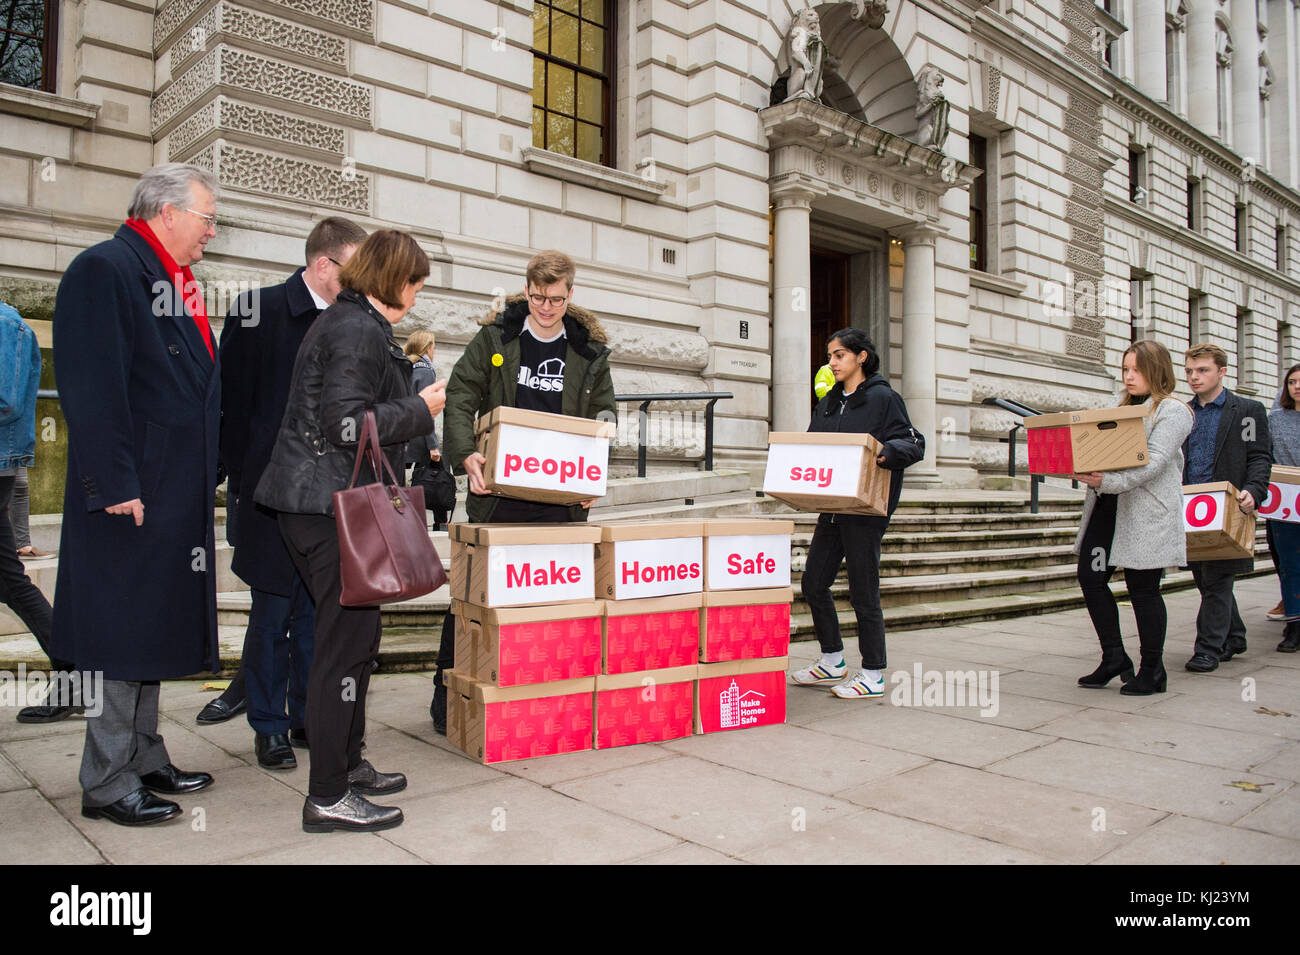 London, United Kingdom. 21st November 2017.Peter Dowd MP, Labour's Shadow Chief Secretary to the Treasury and - Stock Image